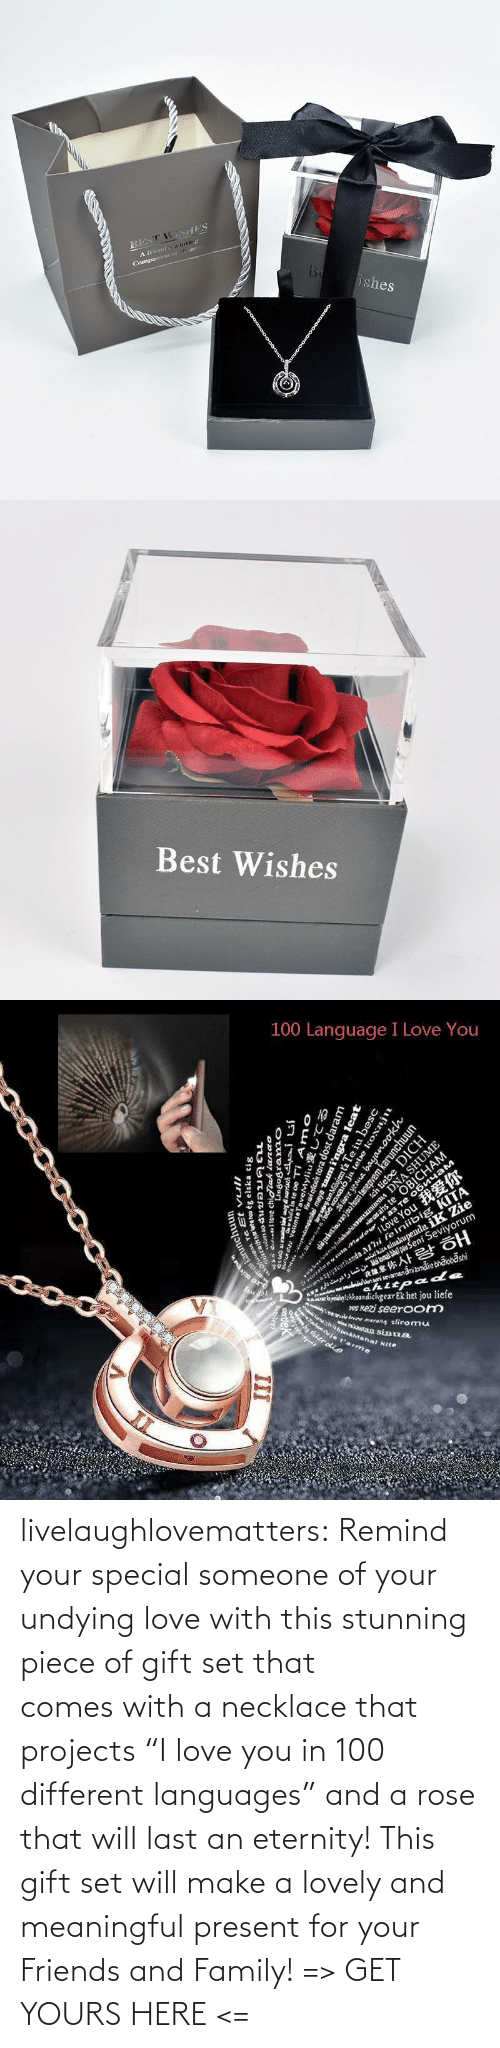 "Meaningful: livelaughlovematters:  Remind your special someone of your undying love with this stunning piece of gift set that comes with a necklace that projects ""I love you in 100 different languages"" and a rose that will last an eternity! This gift set will make a lovely and meaningful present for your Friends and Family! => GET YOURS HERE <="